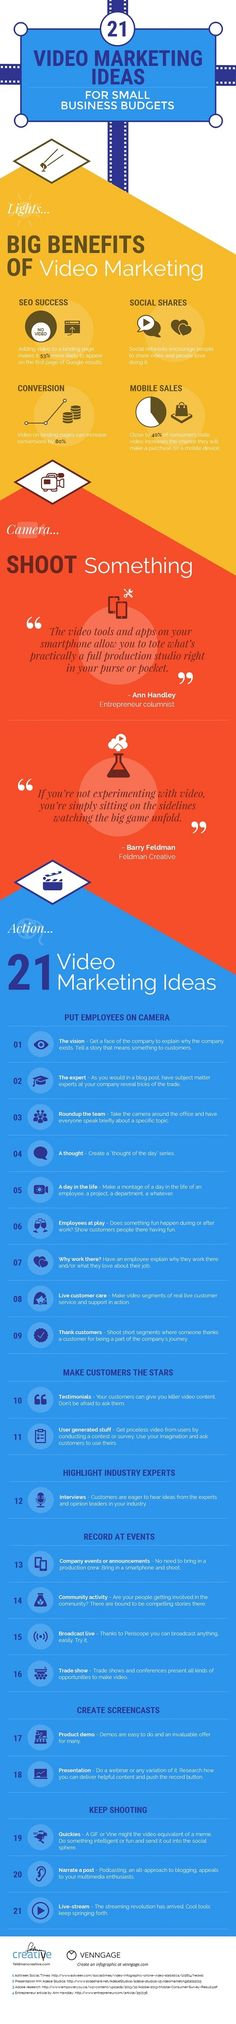 On a small business budget but still want to incorporate video into your mix? This infographic will help!